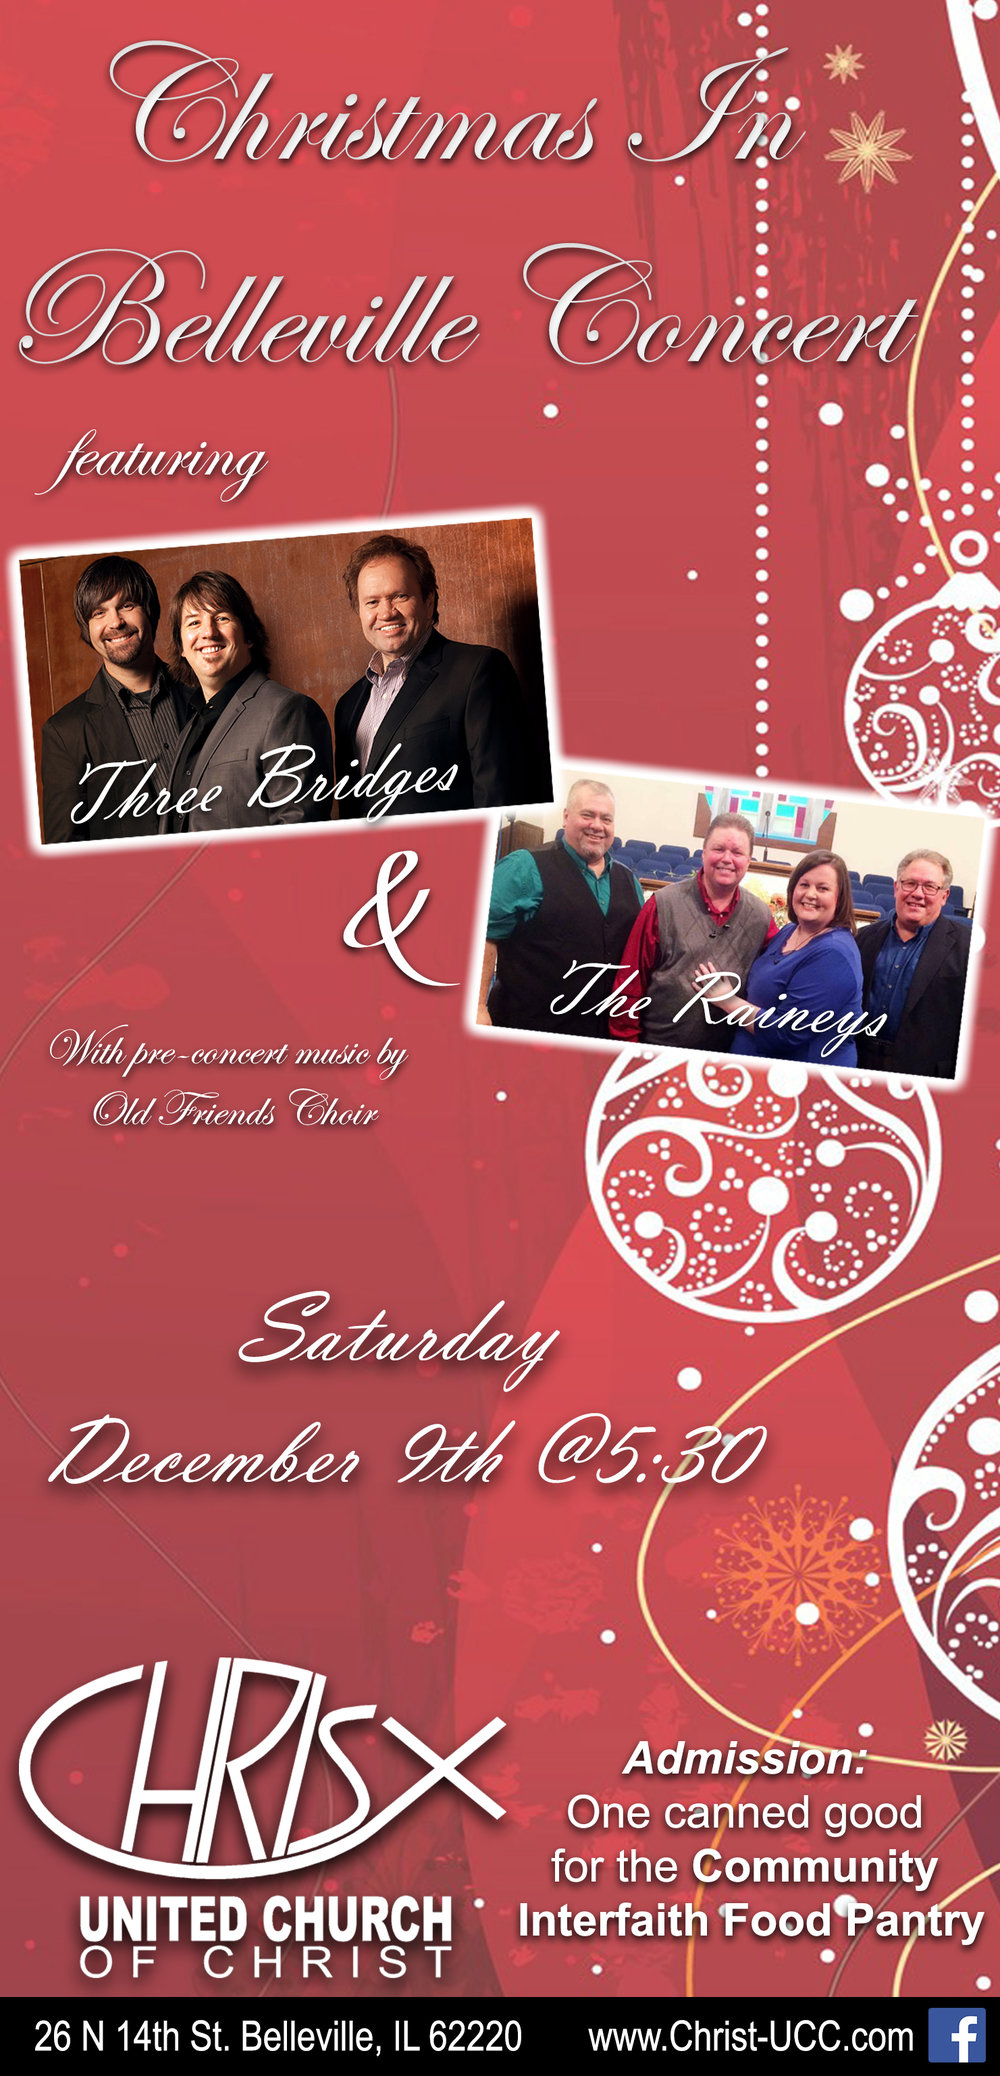 Featuring Three Bridges & The Raineys with opening music by Old Friends Choir.  Admission: one Can food item for the Community Interfaith Food Pantry.